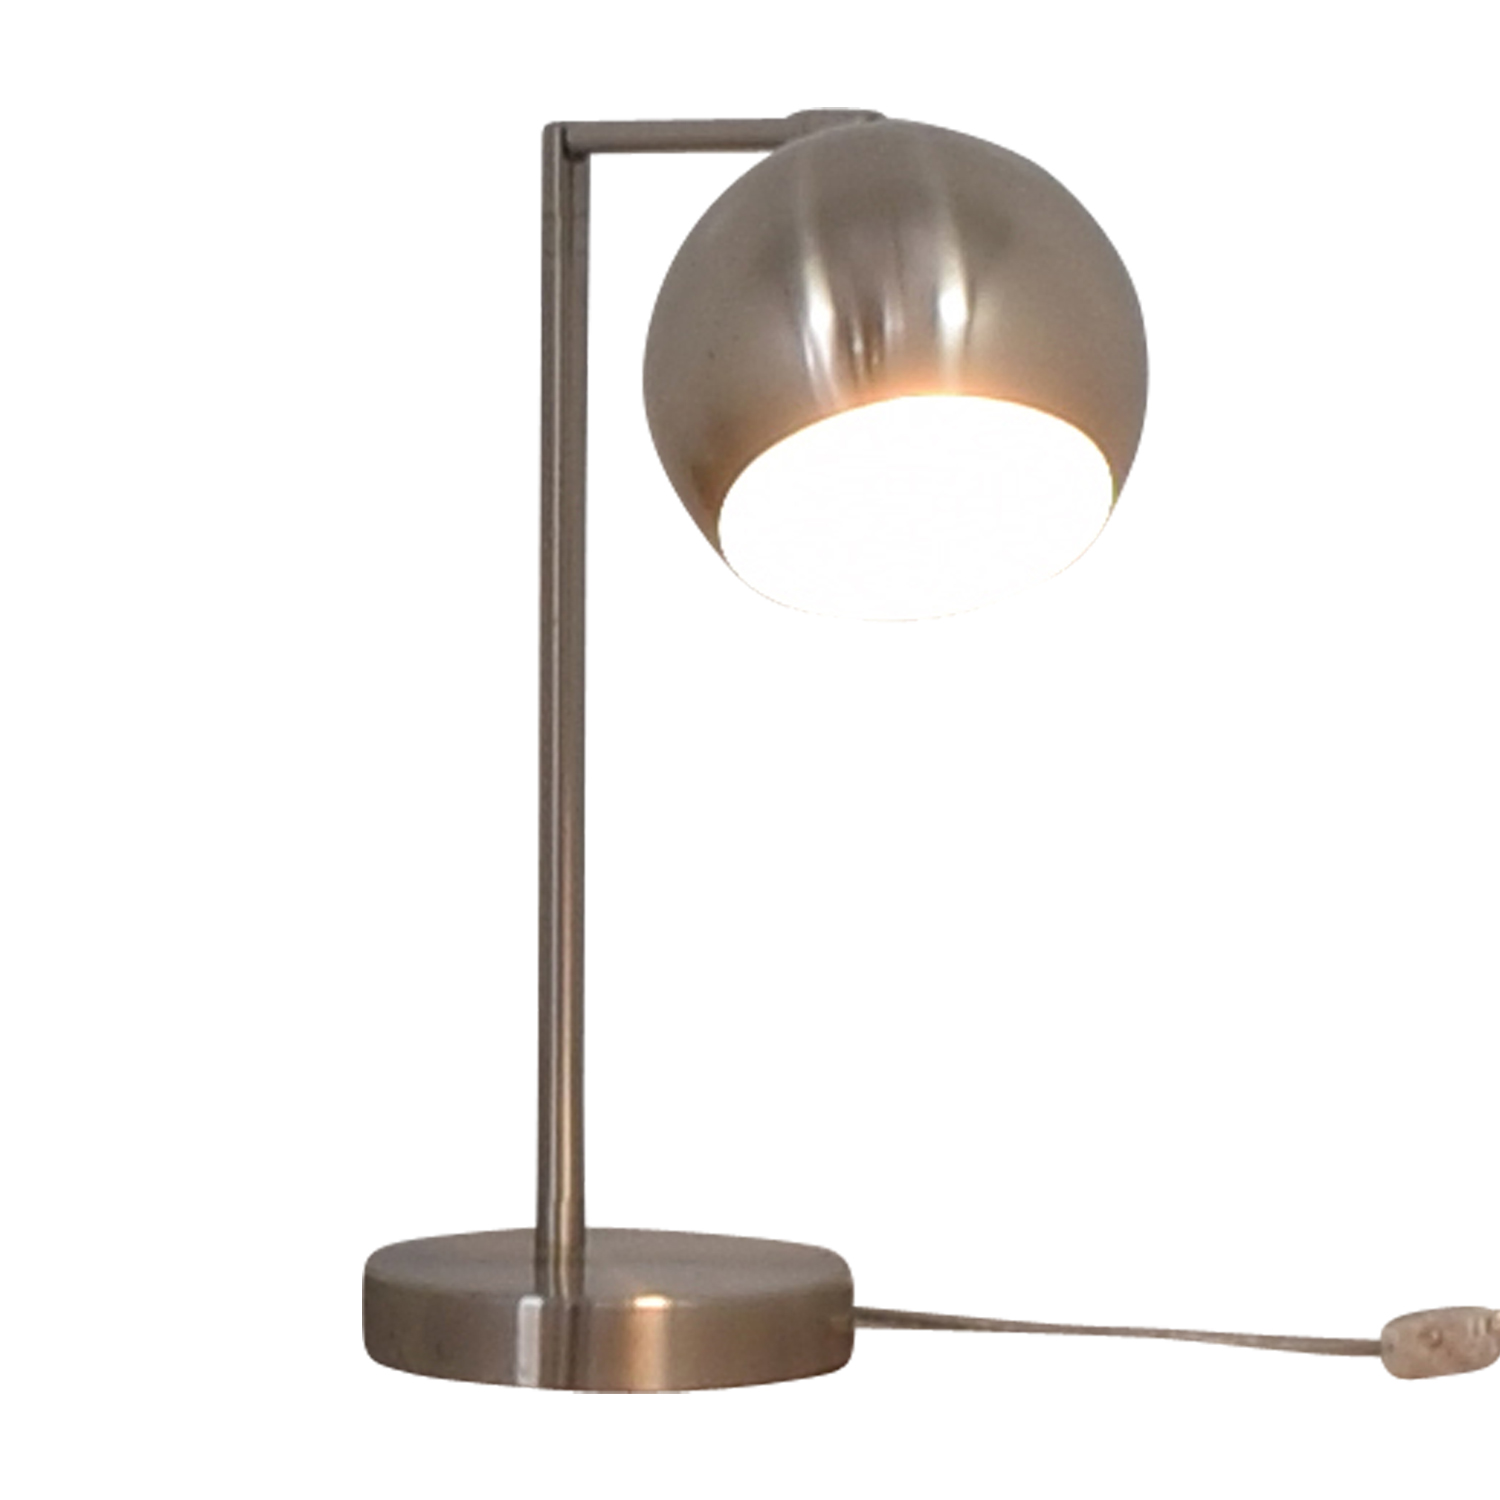 Chrome Desk Lamp / Lamps